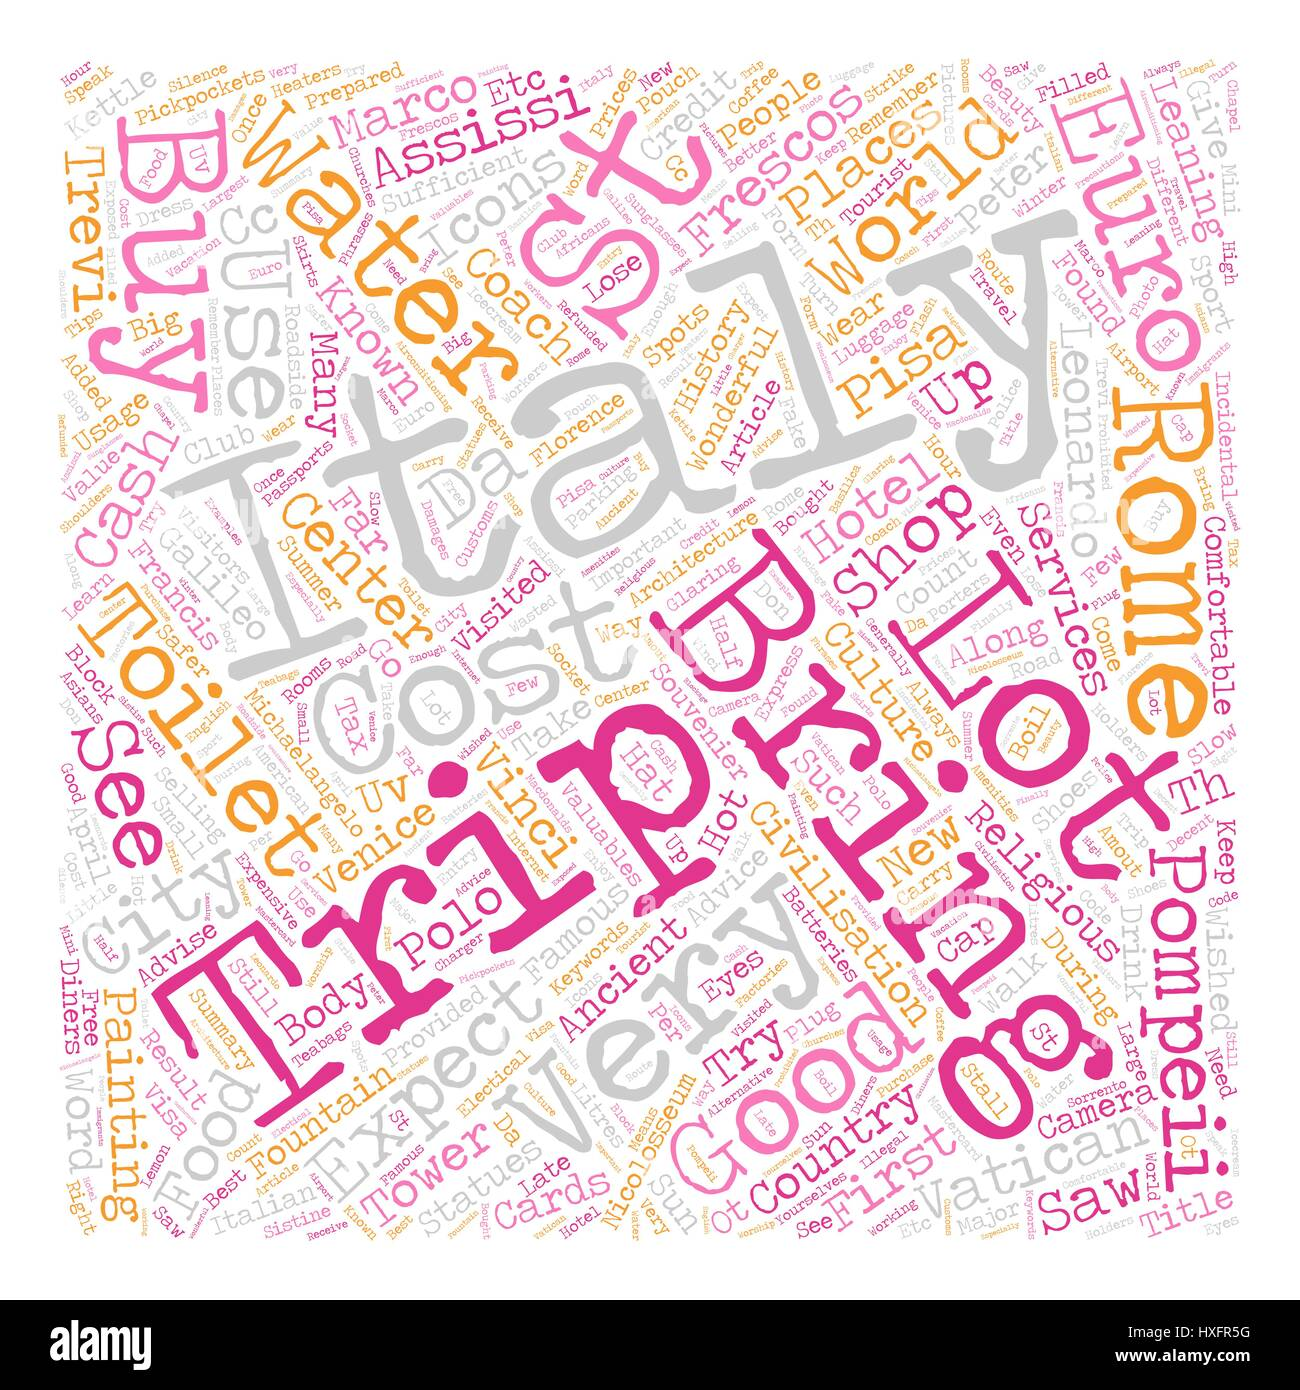 Our Trip To Italy April 2007 text background wordcloud concept - Stock Vector